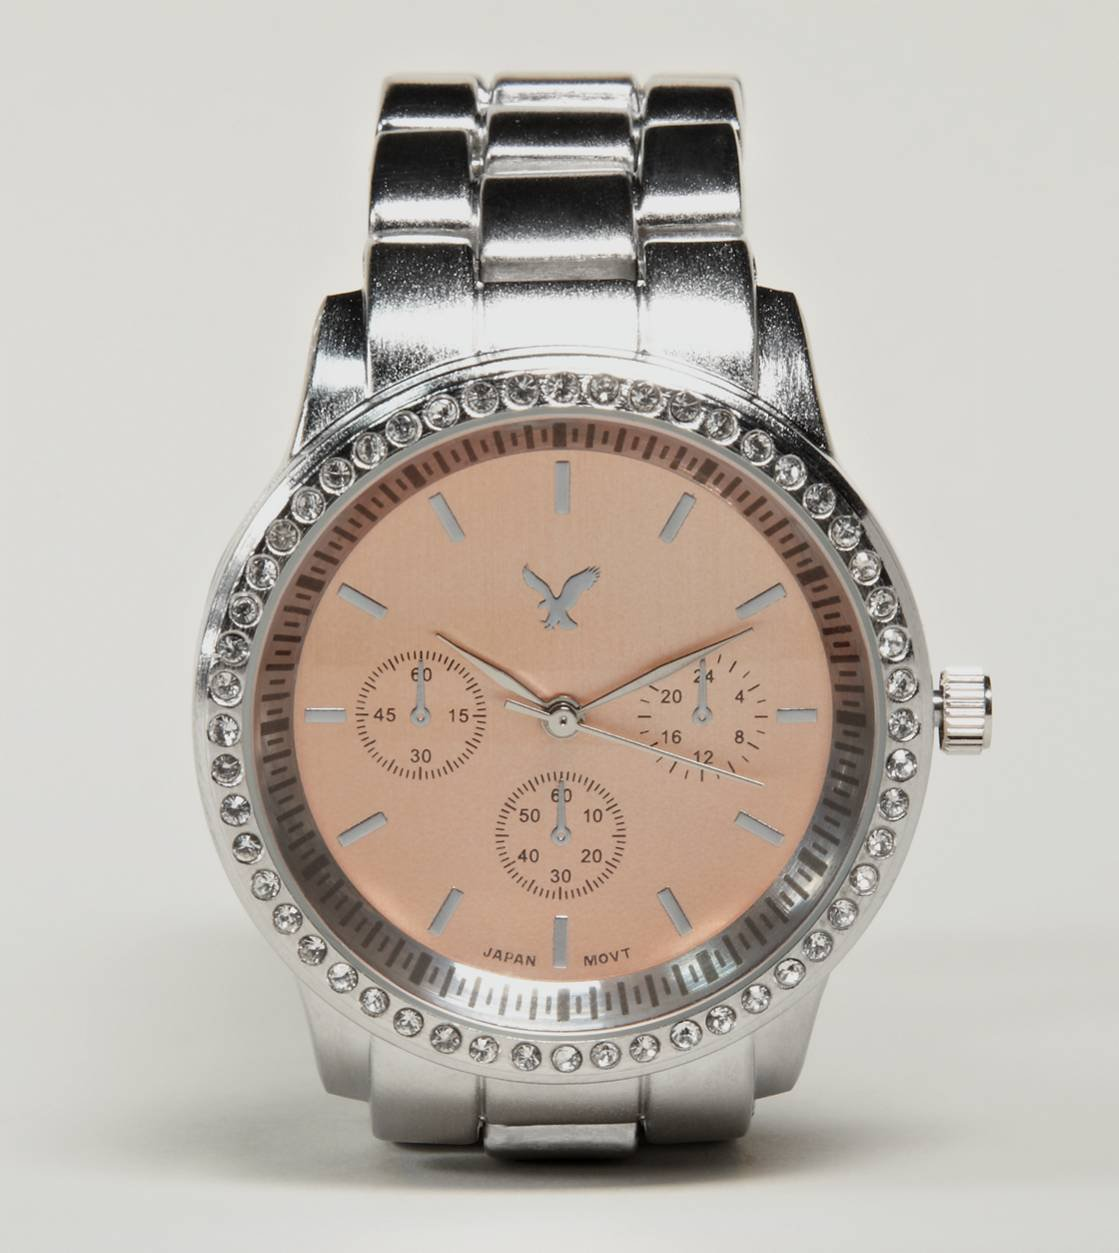 AEO Chronograph Watch | American Eagle Outfitters